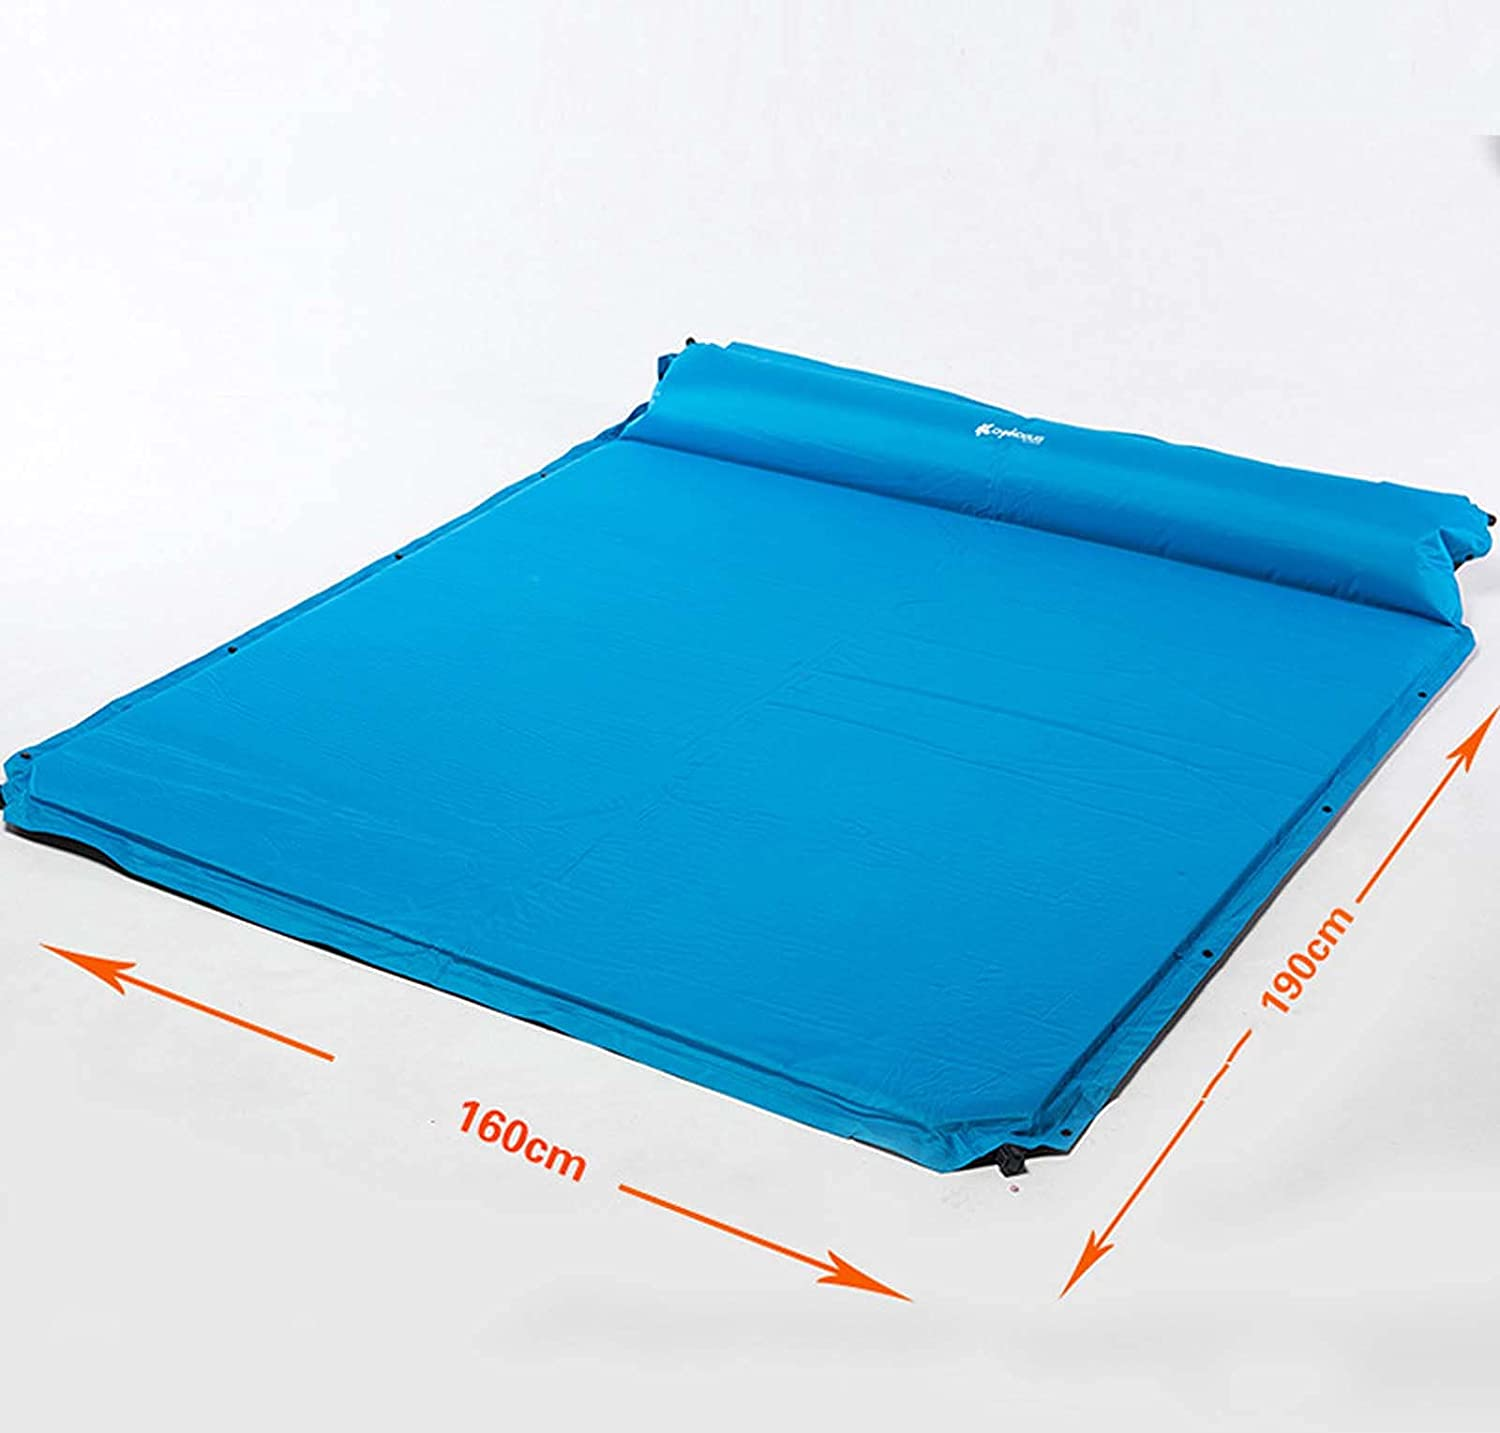 GYLMXF Double Camping Mattress Self Same day shipping 75D Pongee Manufacturer direct delivery Inflating Fabric